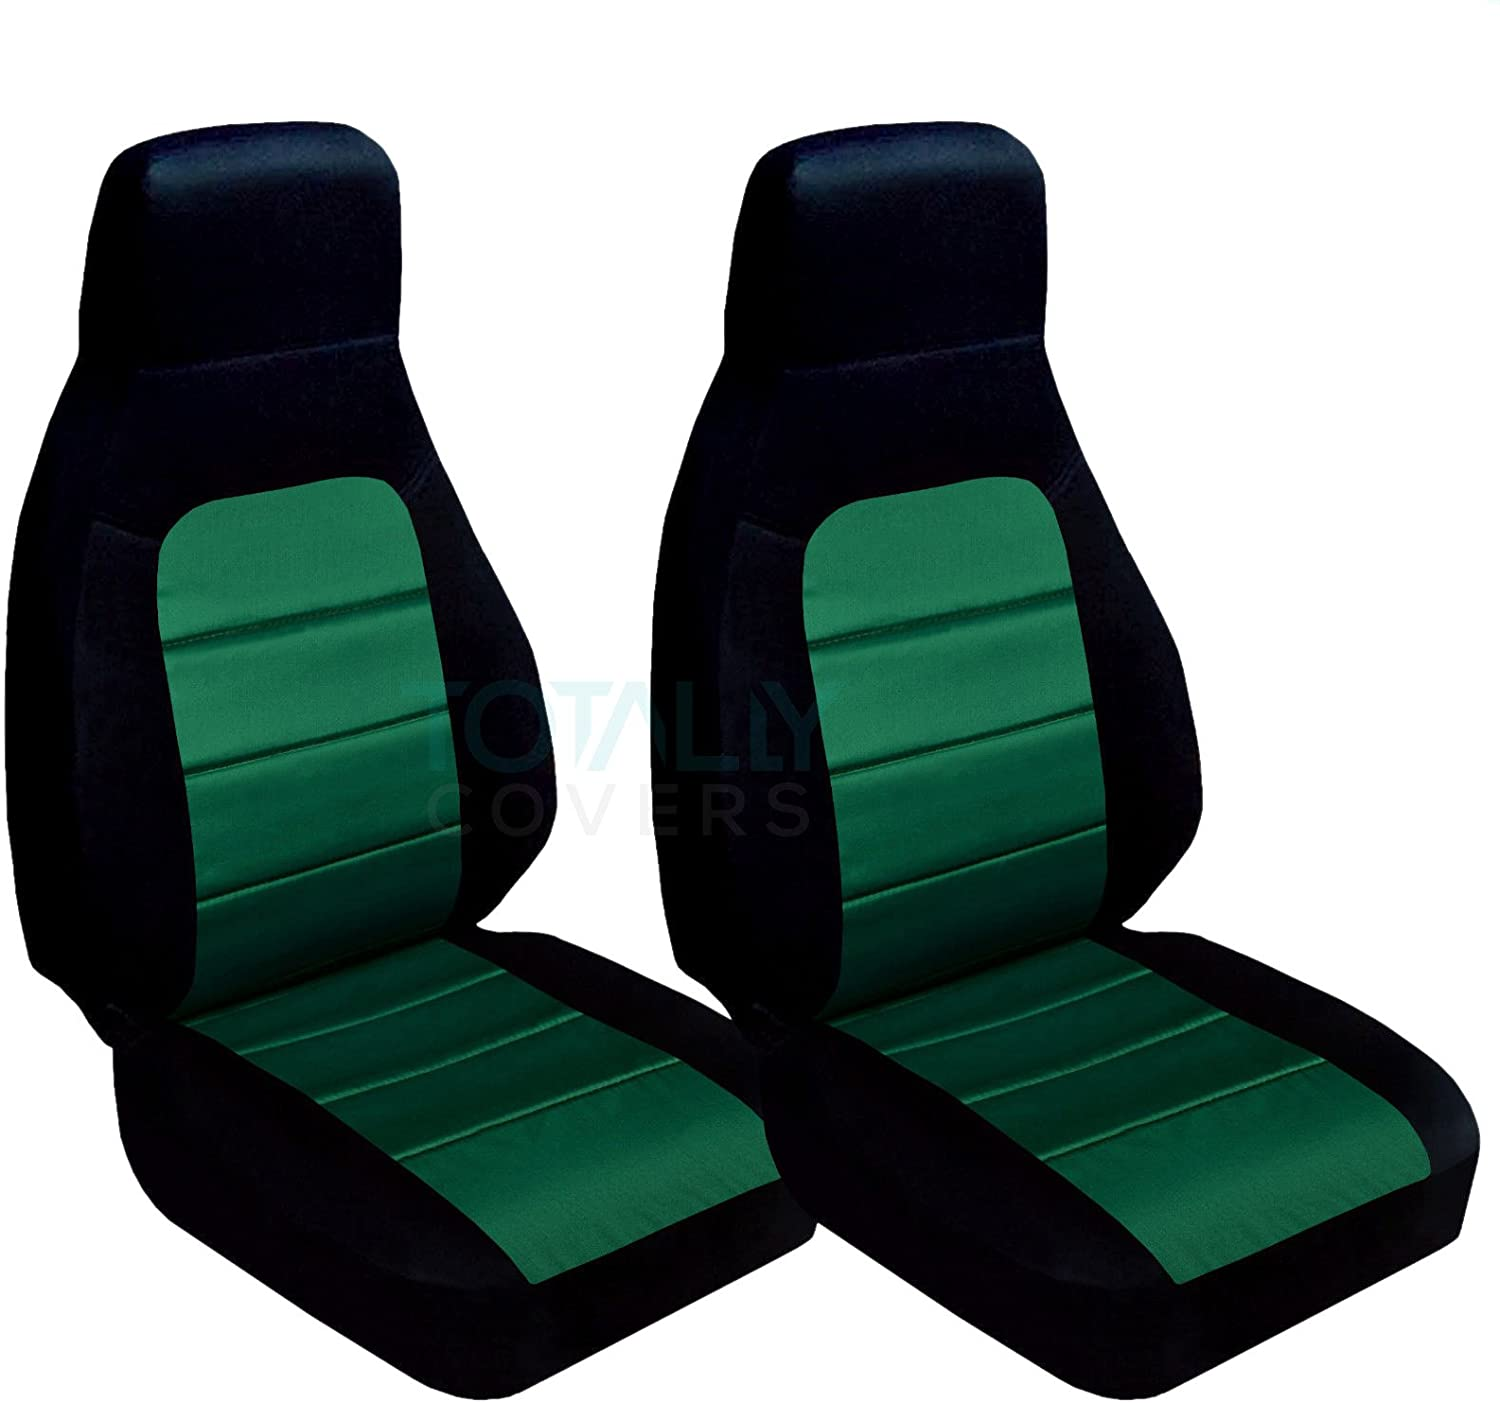 Totally Covers Compatible with 1990-2000 Mazda MX-5 Miata Seat Covers: Black and Emerald Green (22 Colors) Bucket